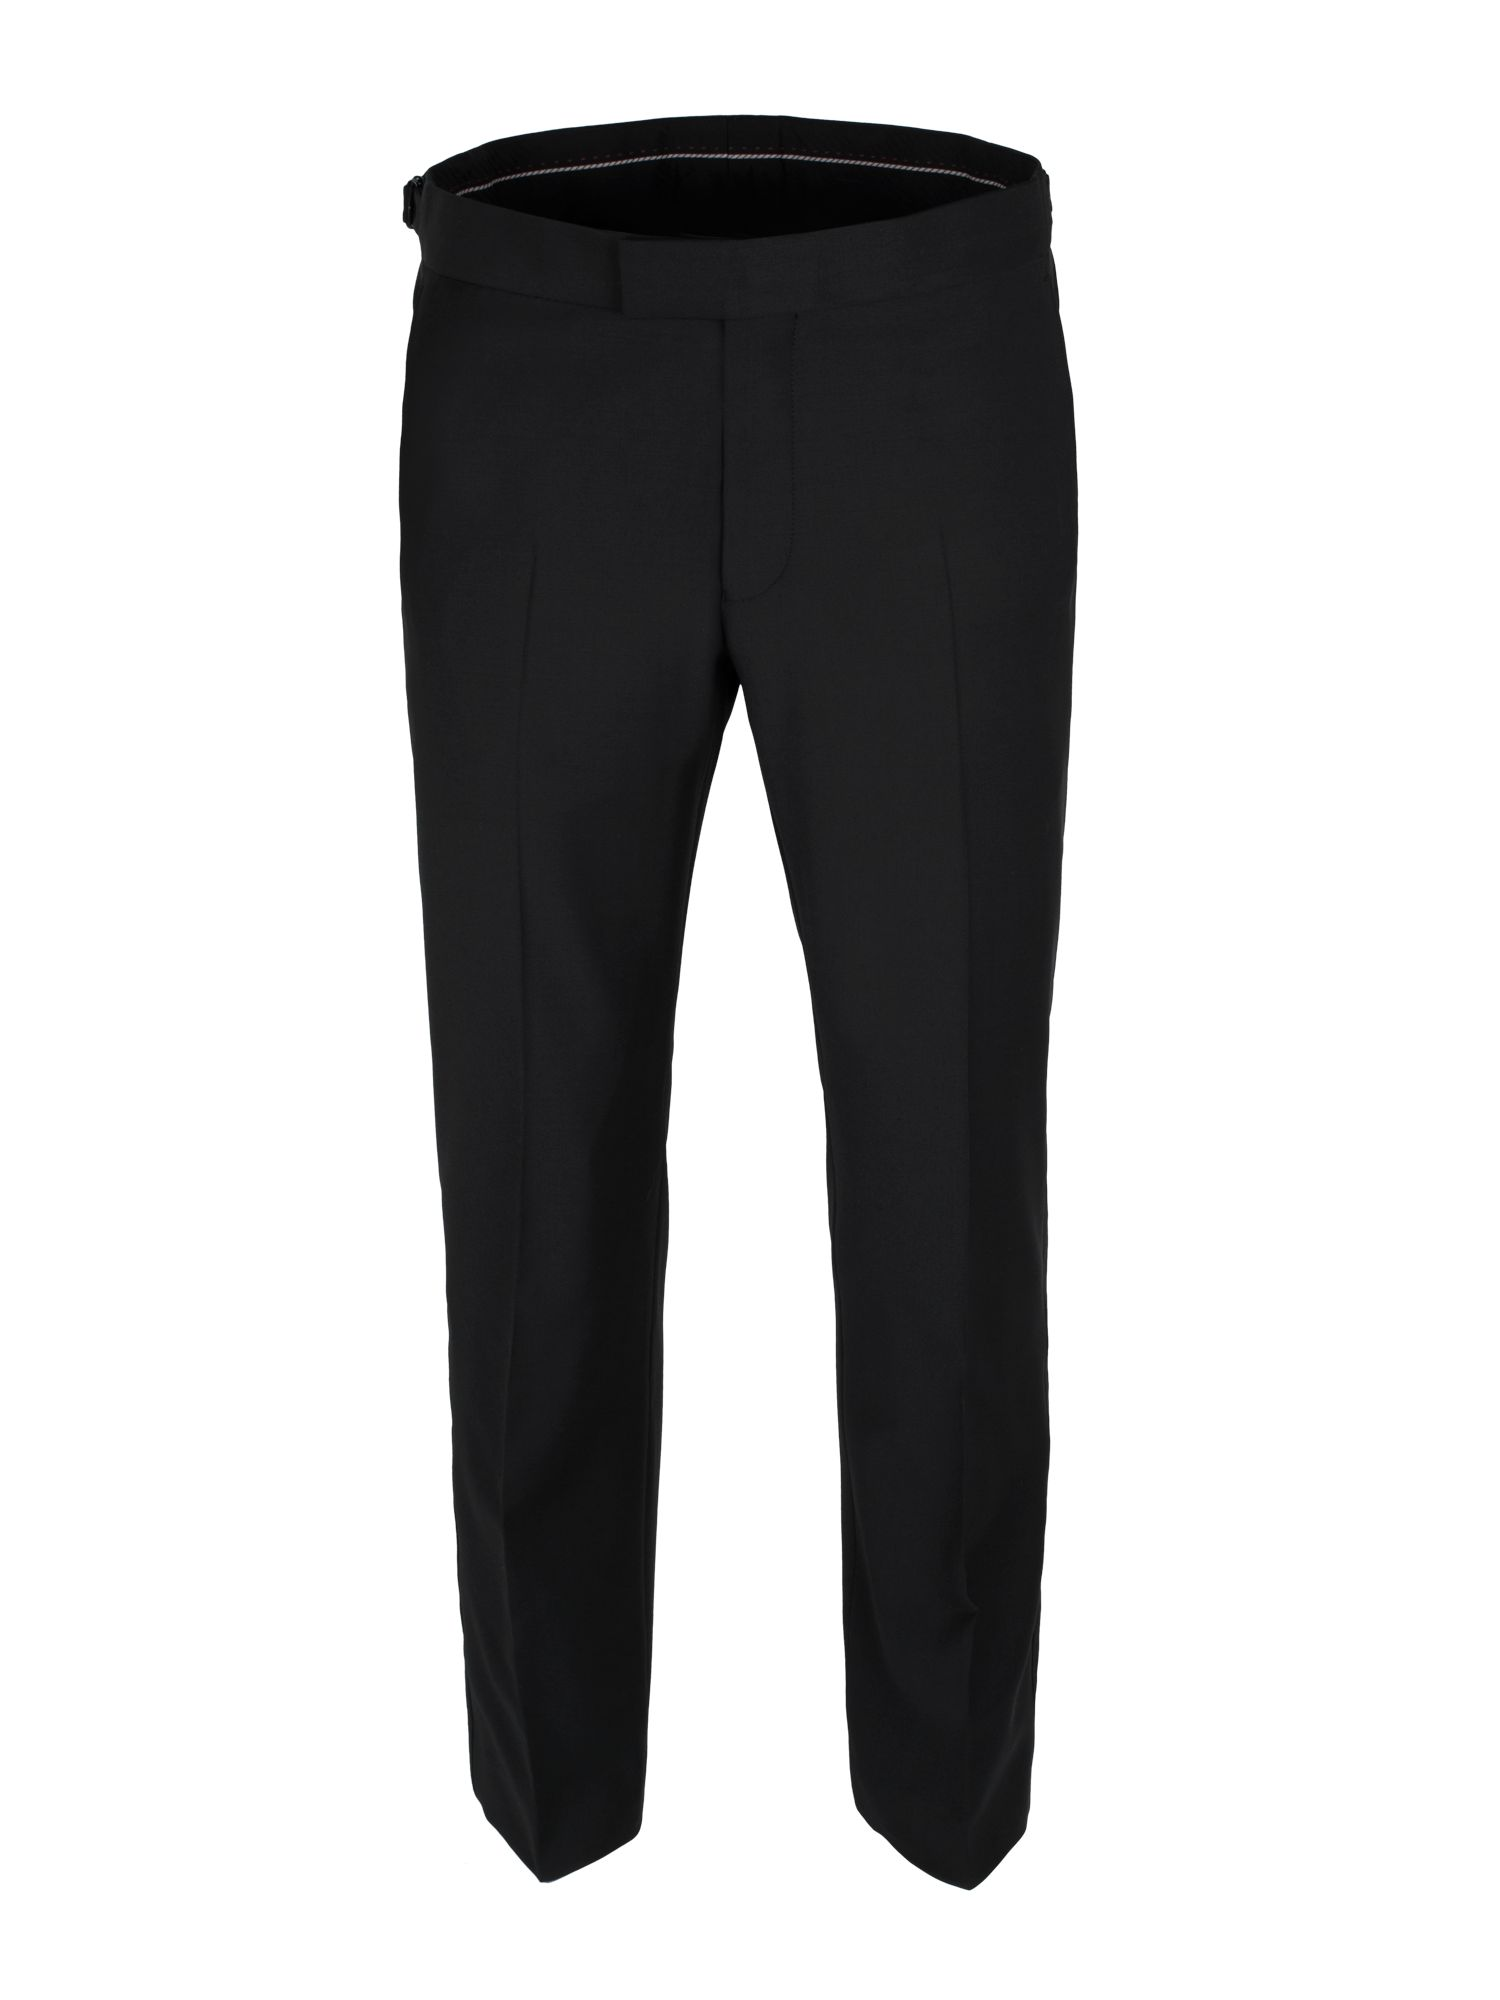 Black Dinner Trousers